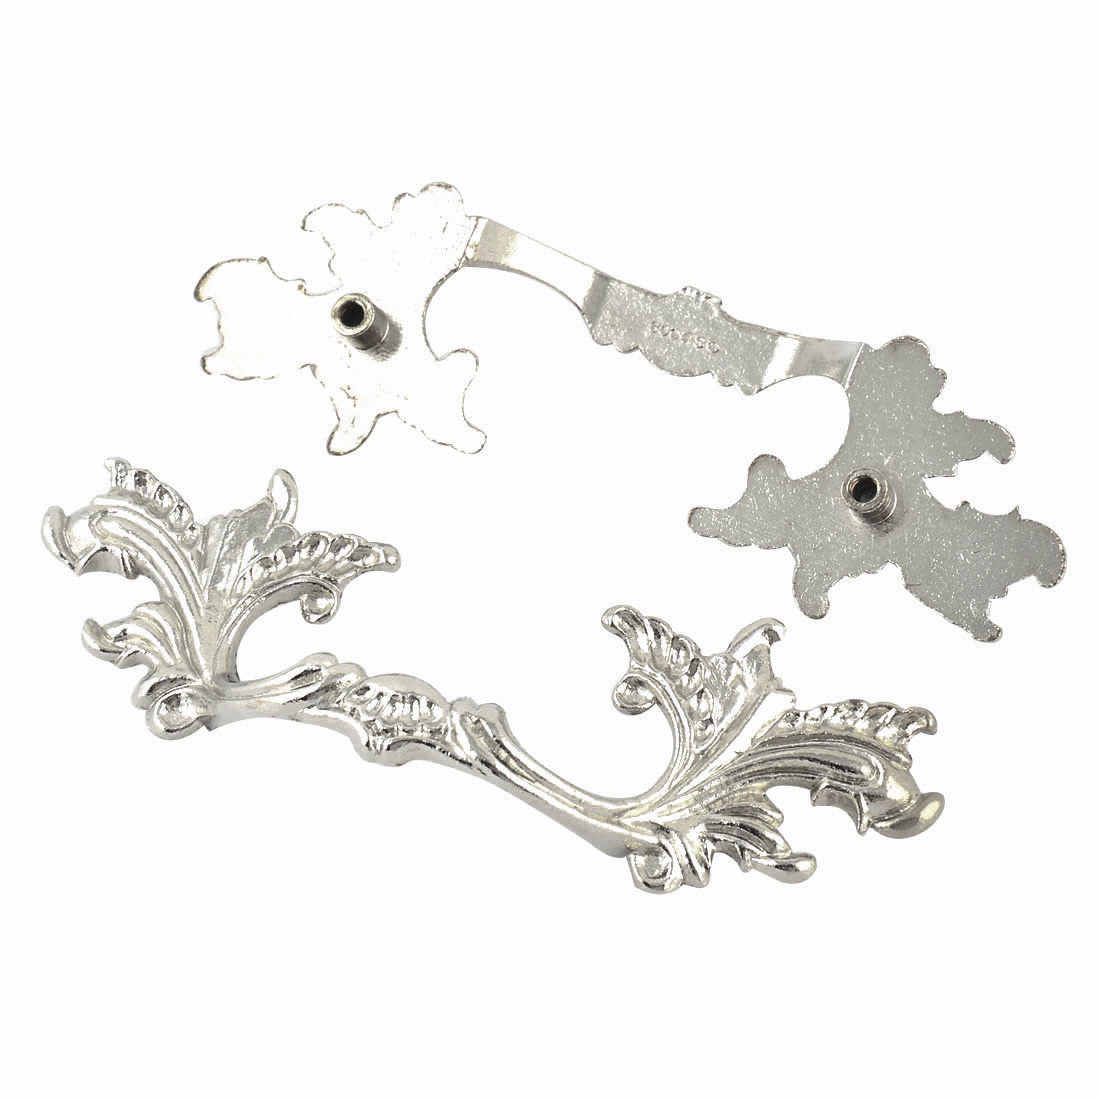 Cabinet Drawer Box Zinc Alloy Leaf Shaped Puller Pull Handle Silver Tone 2pcs